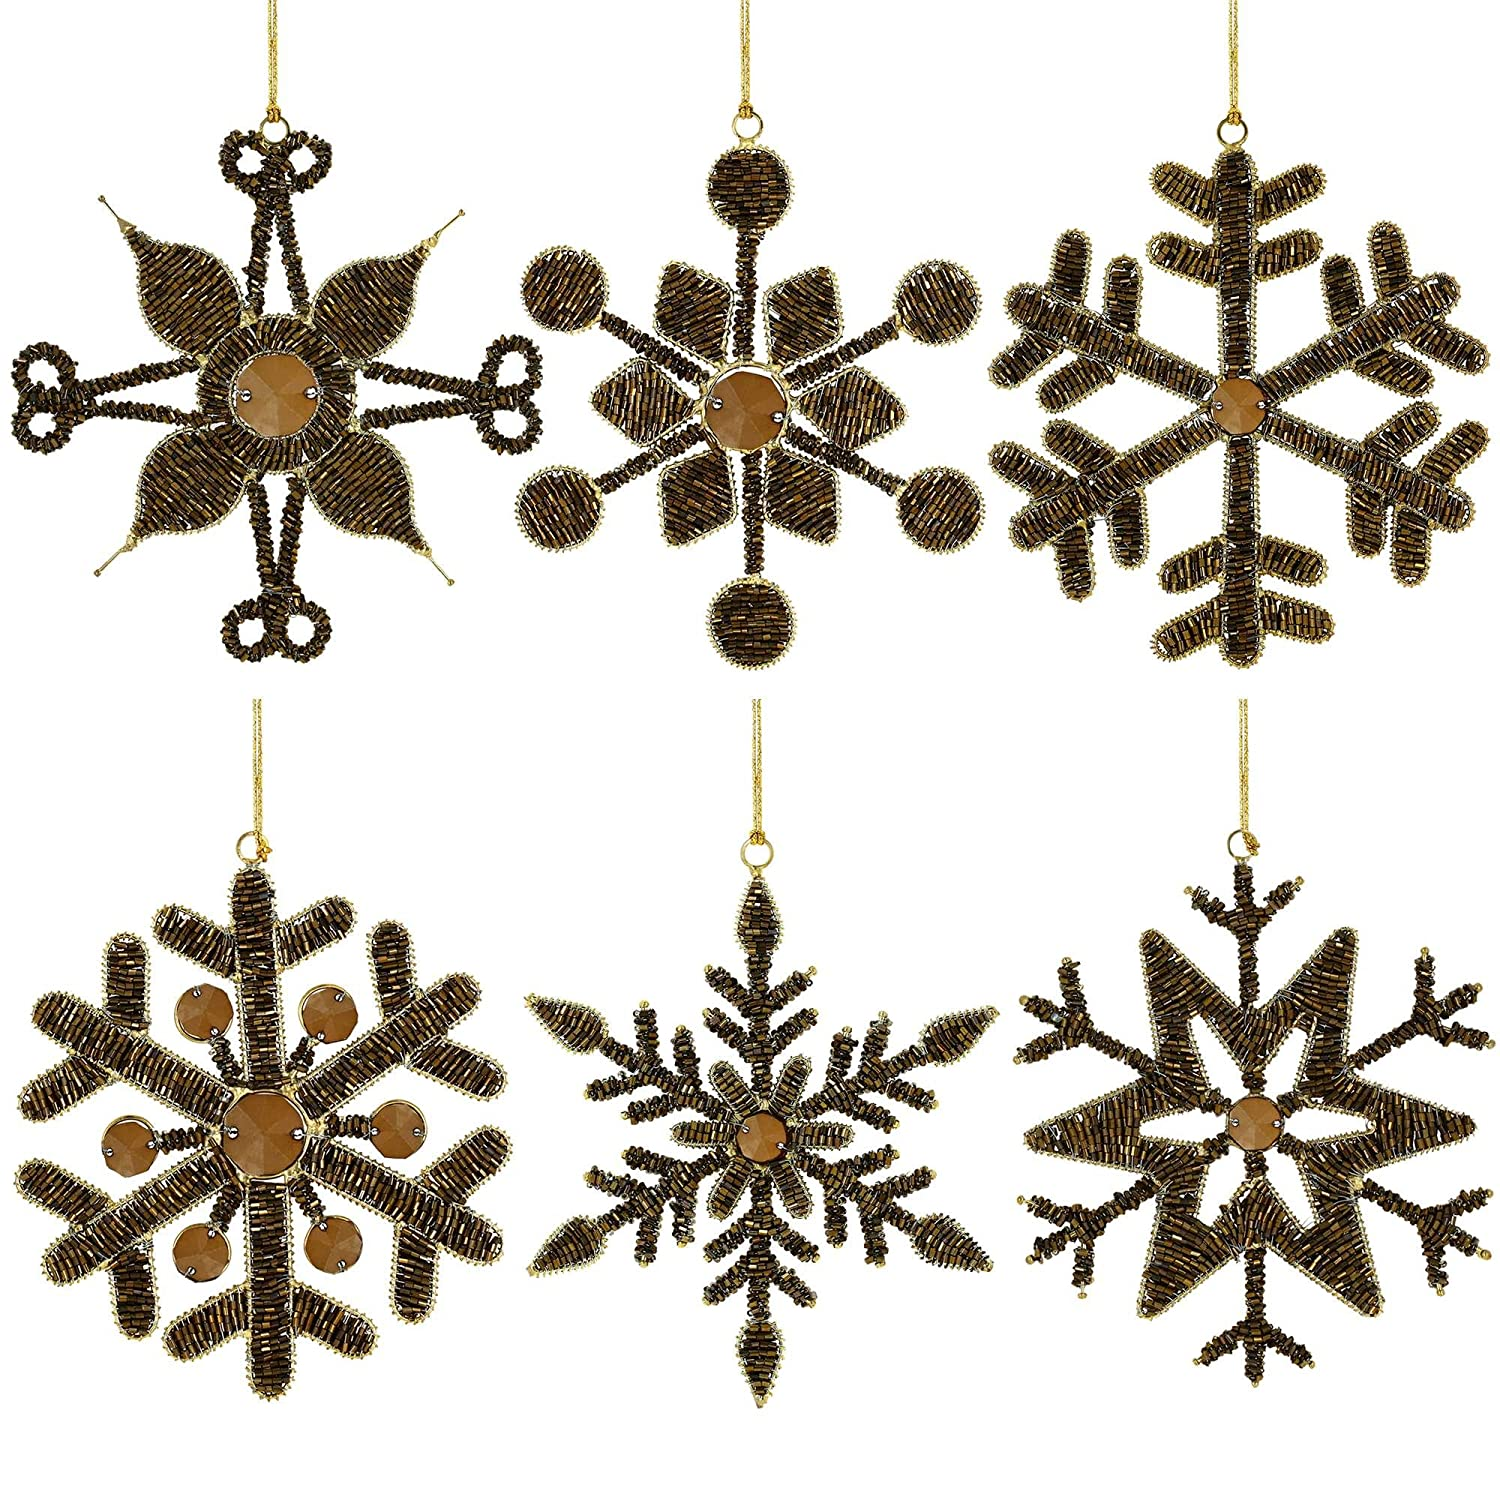 Plastic ornament hangers - 5 Sets Of 6 6 Handmade Golden Snowflake Iron And Glass Pendant Party Ornaments 6 Inches Each Gifts Set Include Six Different Party Ornaments Festive